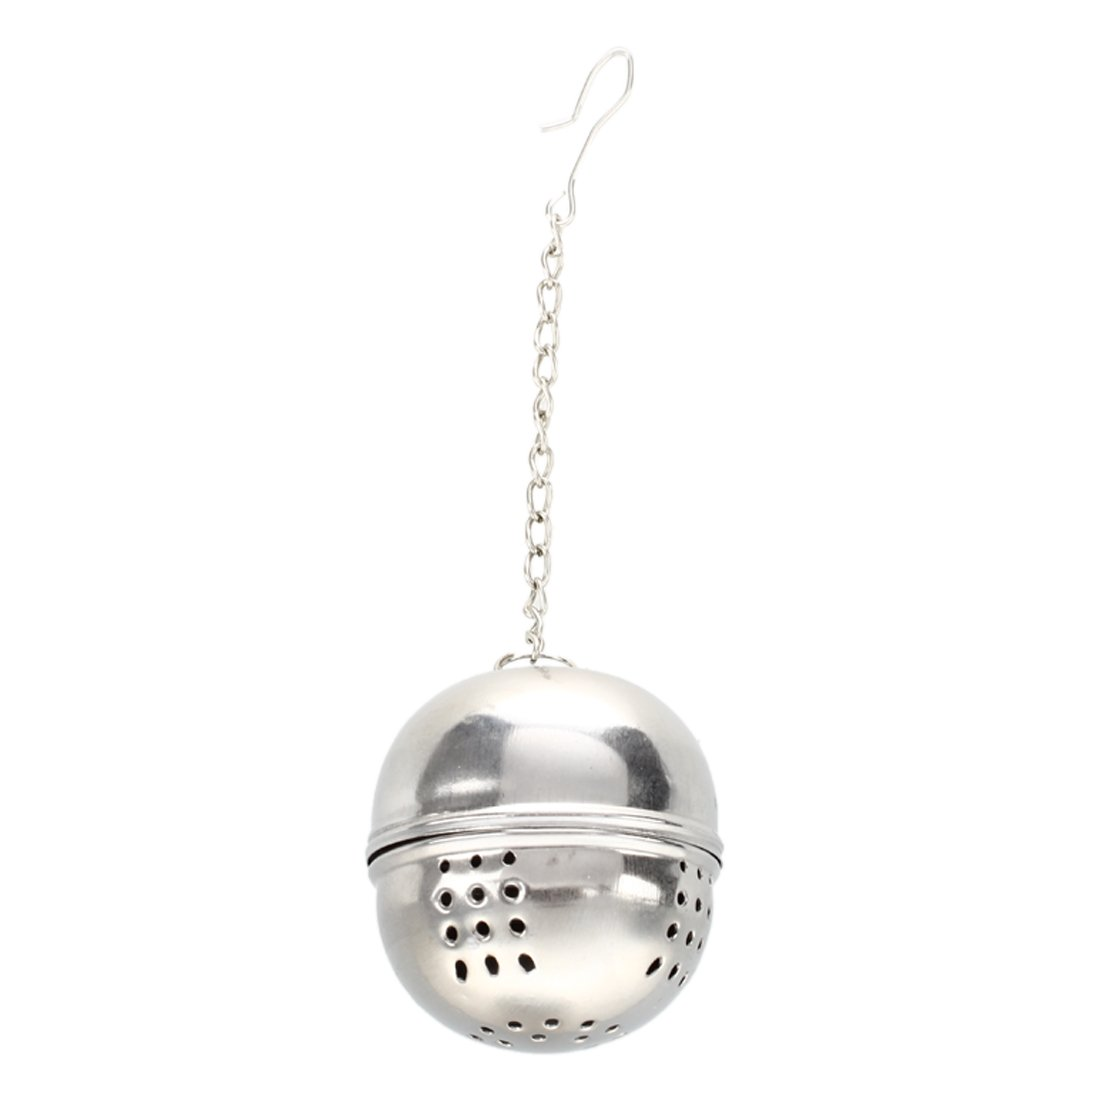 Xigeapg TEA BALL STRAINER INFUSER INFUSE METAL STAINLESS STEEL